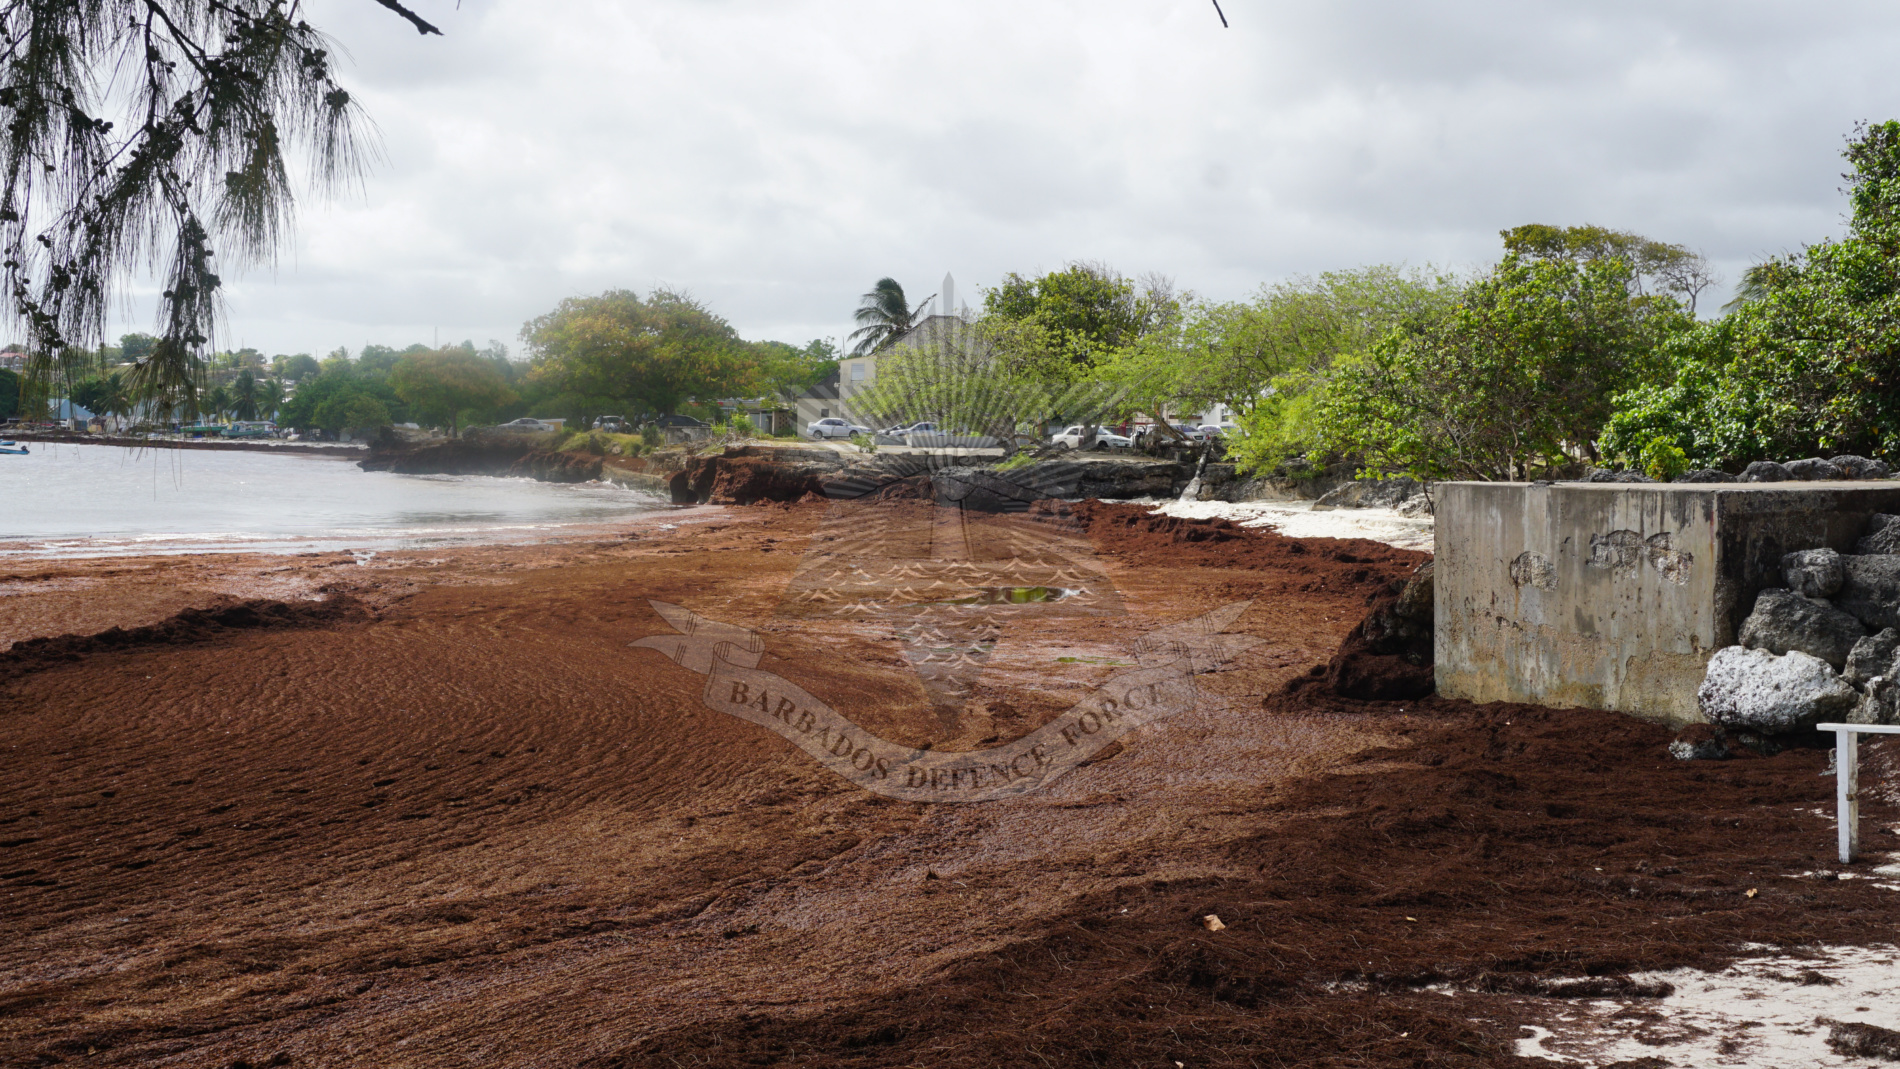 BDF Sargassum Seaweed Programme - The Barbados Defence Force